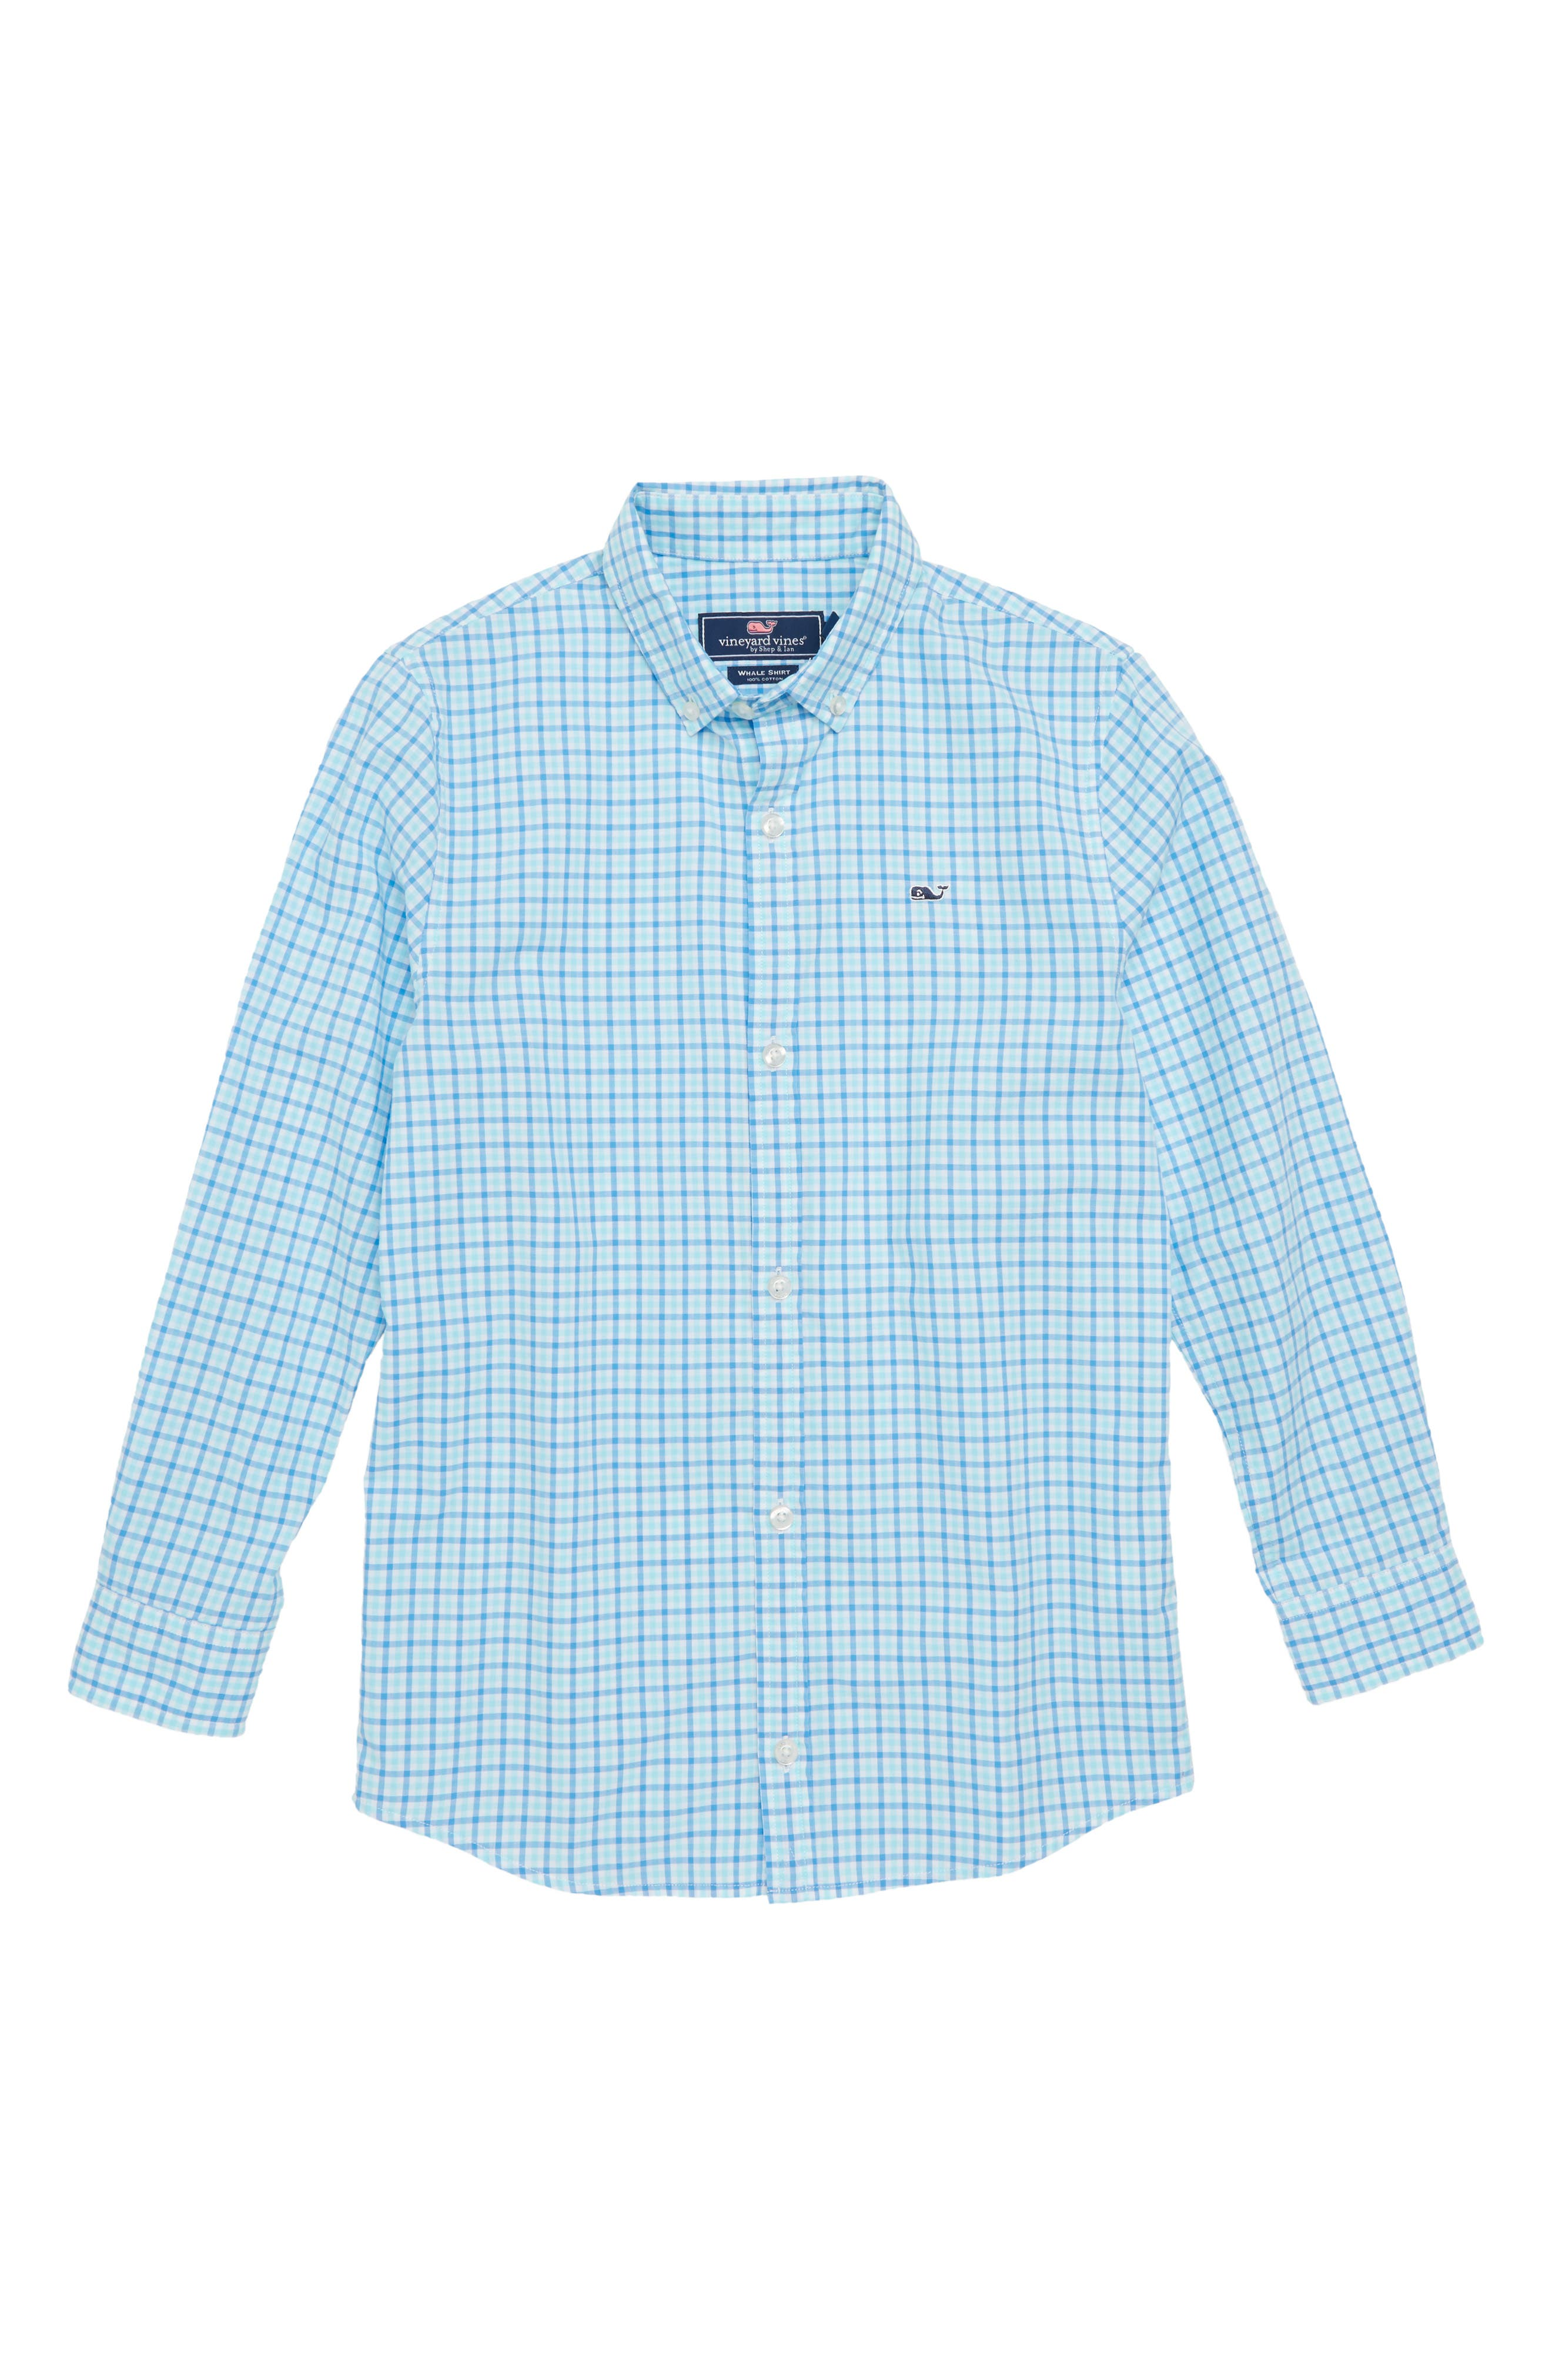 Point Gammon Gingham Whale Shirt,                             Main thumbnail 1, color,                             Poolside